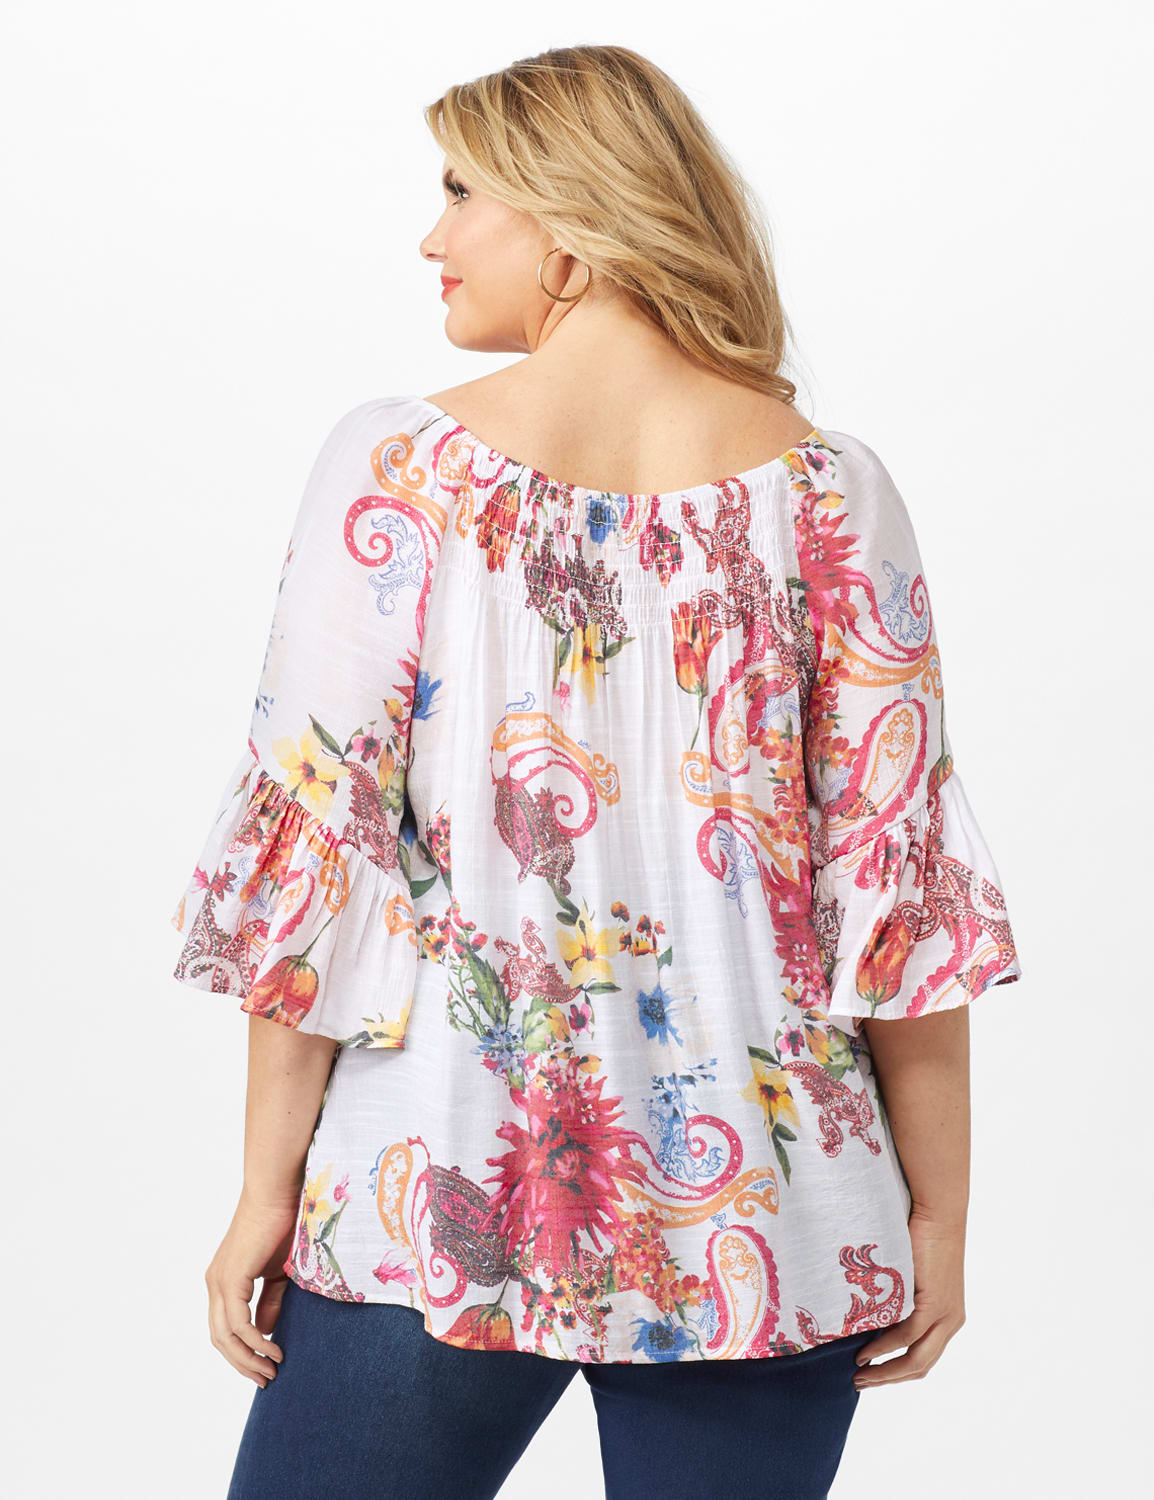 Textured Flounce Sleeve Floral/Paisley Top - Multi - Back